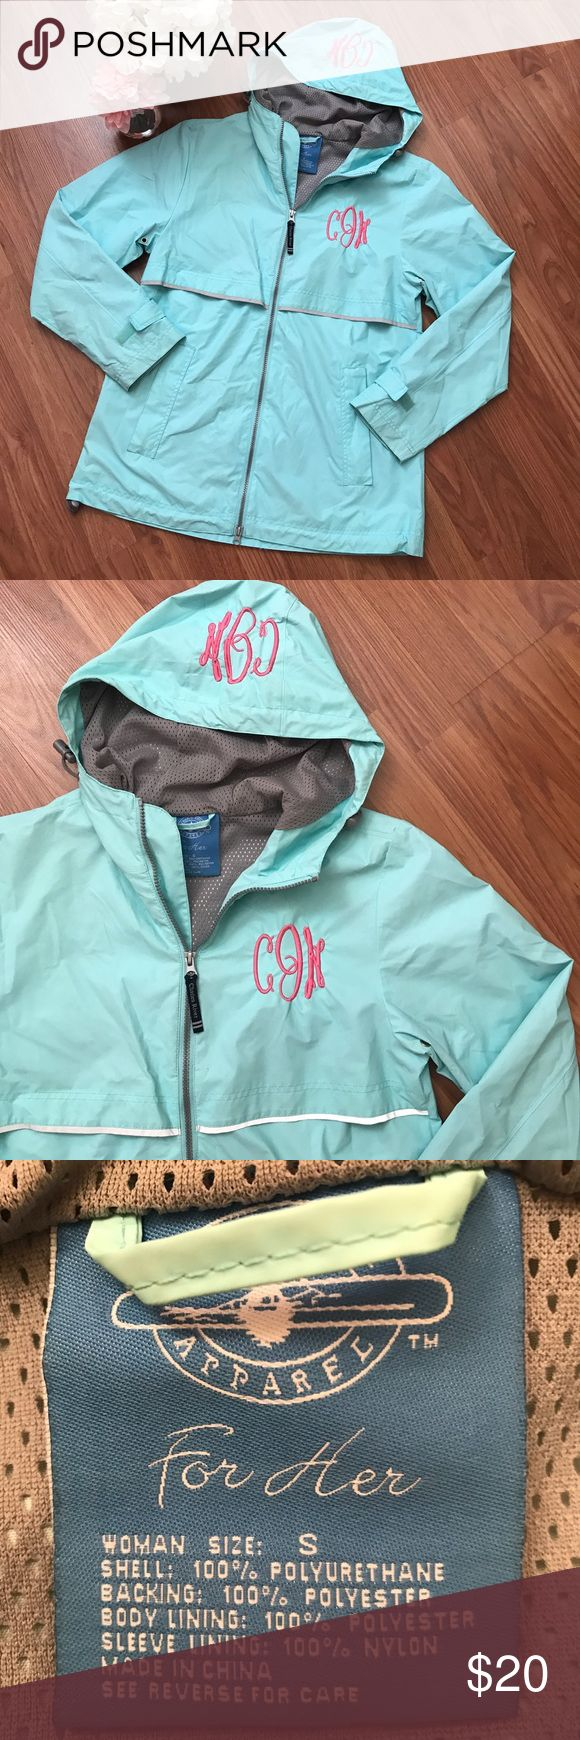 Monogrammed Turquoise Blue Rain Jacket (CJN) This is a super cute custom monogrammed rain jacket with with initials CJN. Perfect for anyone with the initials CJN or who doesn't mind having other initials on their jacket. The rain coat has the embroidered pink monogram on the chest and hood. This rain coat is in excellent condition and is great quality. No trades. Please feel free to ask any questions! Charles River Jackets & Coats